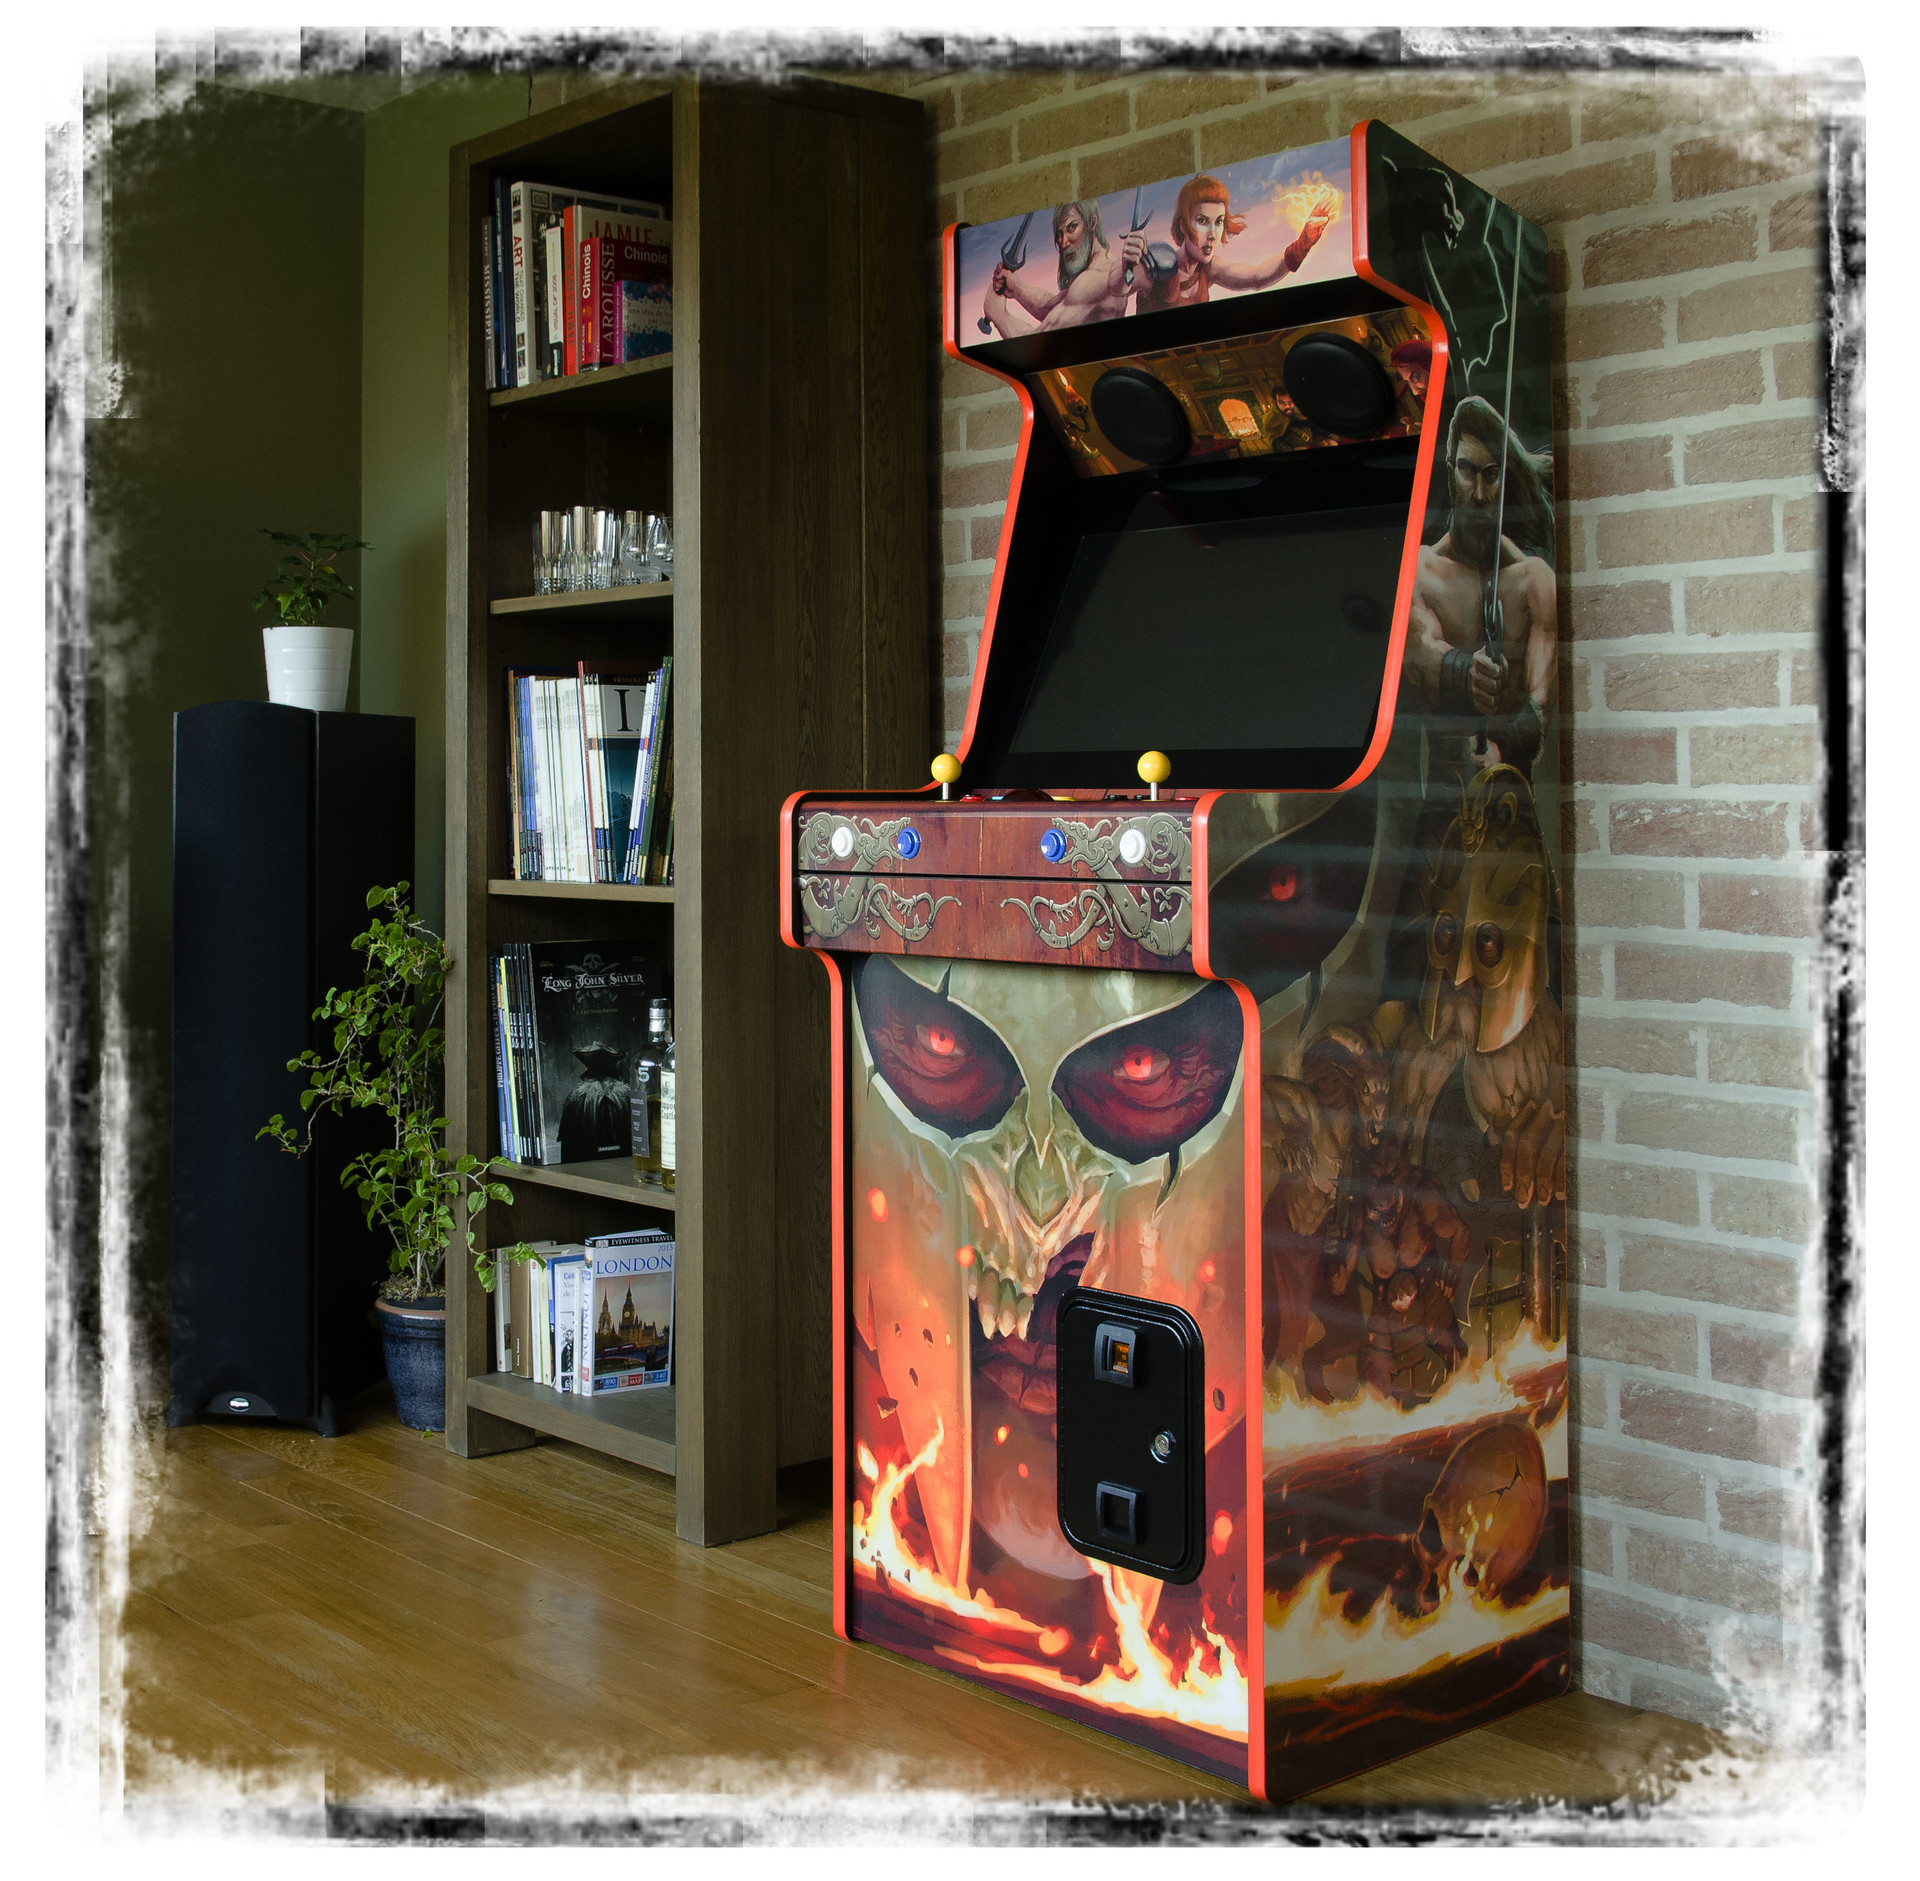 Real arcade with the printed stickers